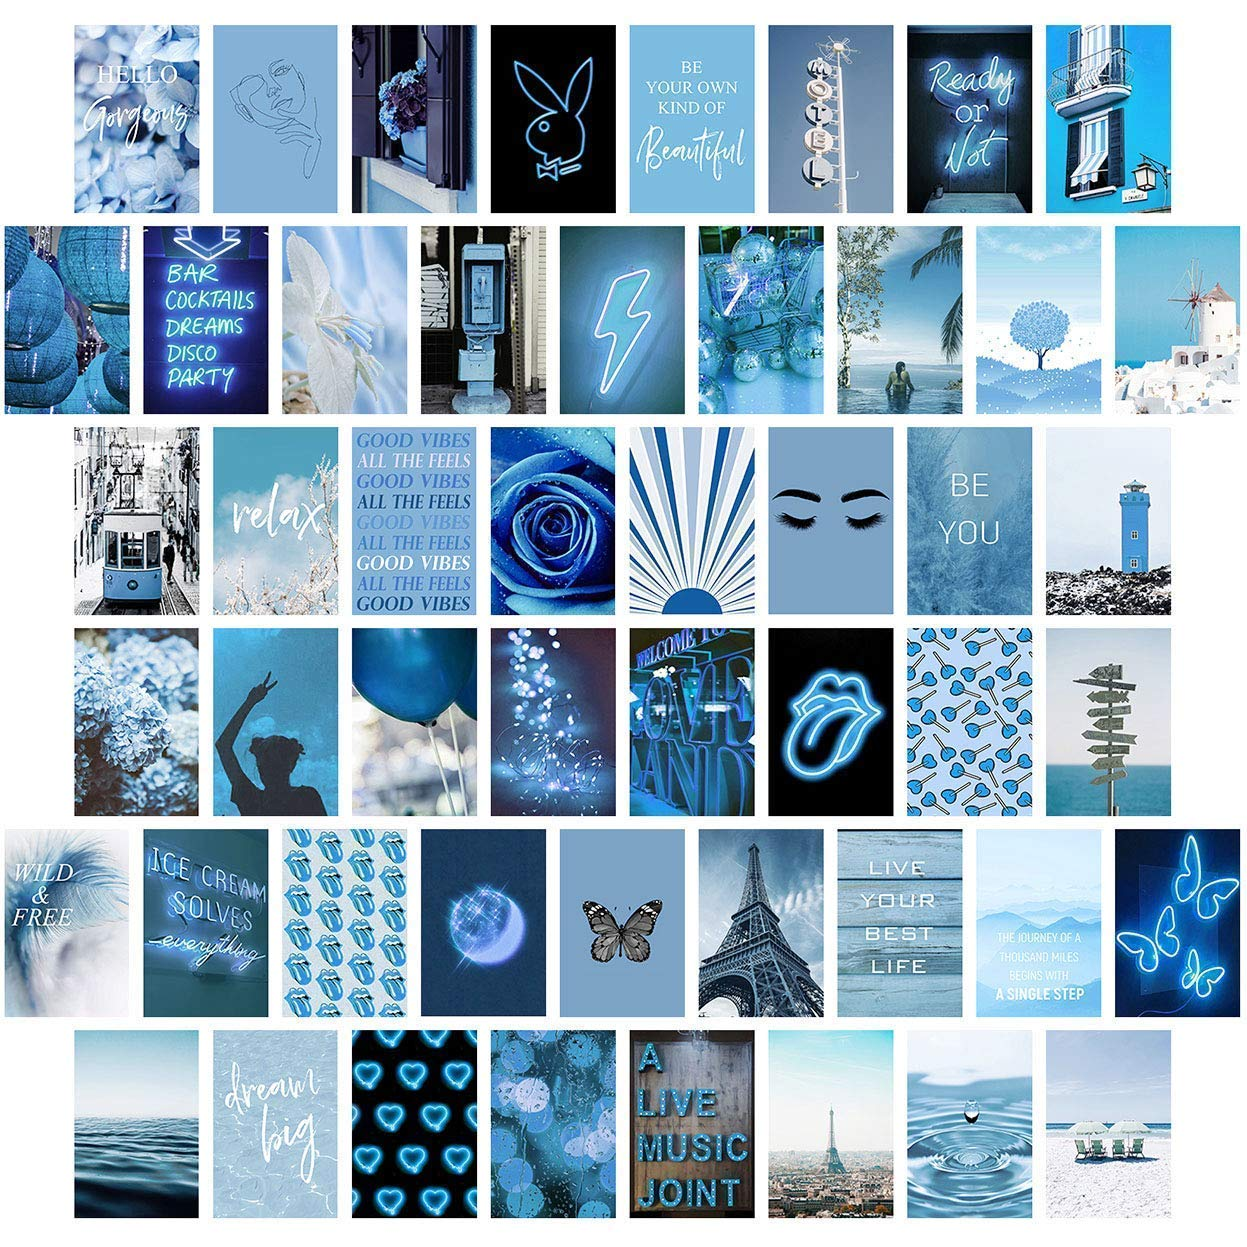 Blue Wall Collage Kit Aesthetic Pictures, Bedroom Decor for Teen Girls, Wall Collage Kit, Collage Kit for Wall Aesthetic, VSCO Girls Bedroom Decor, Aesthetic Posters, Collage Kit (50 PCS 4x6 inch)